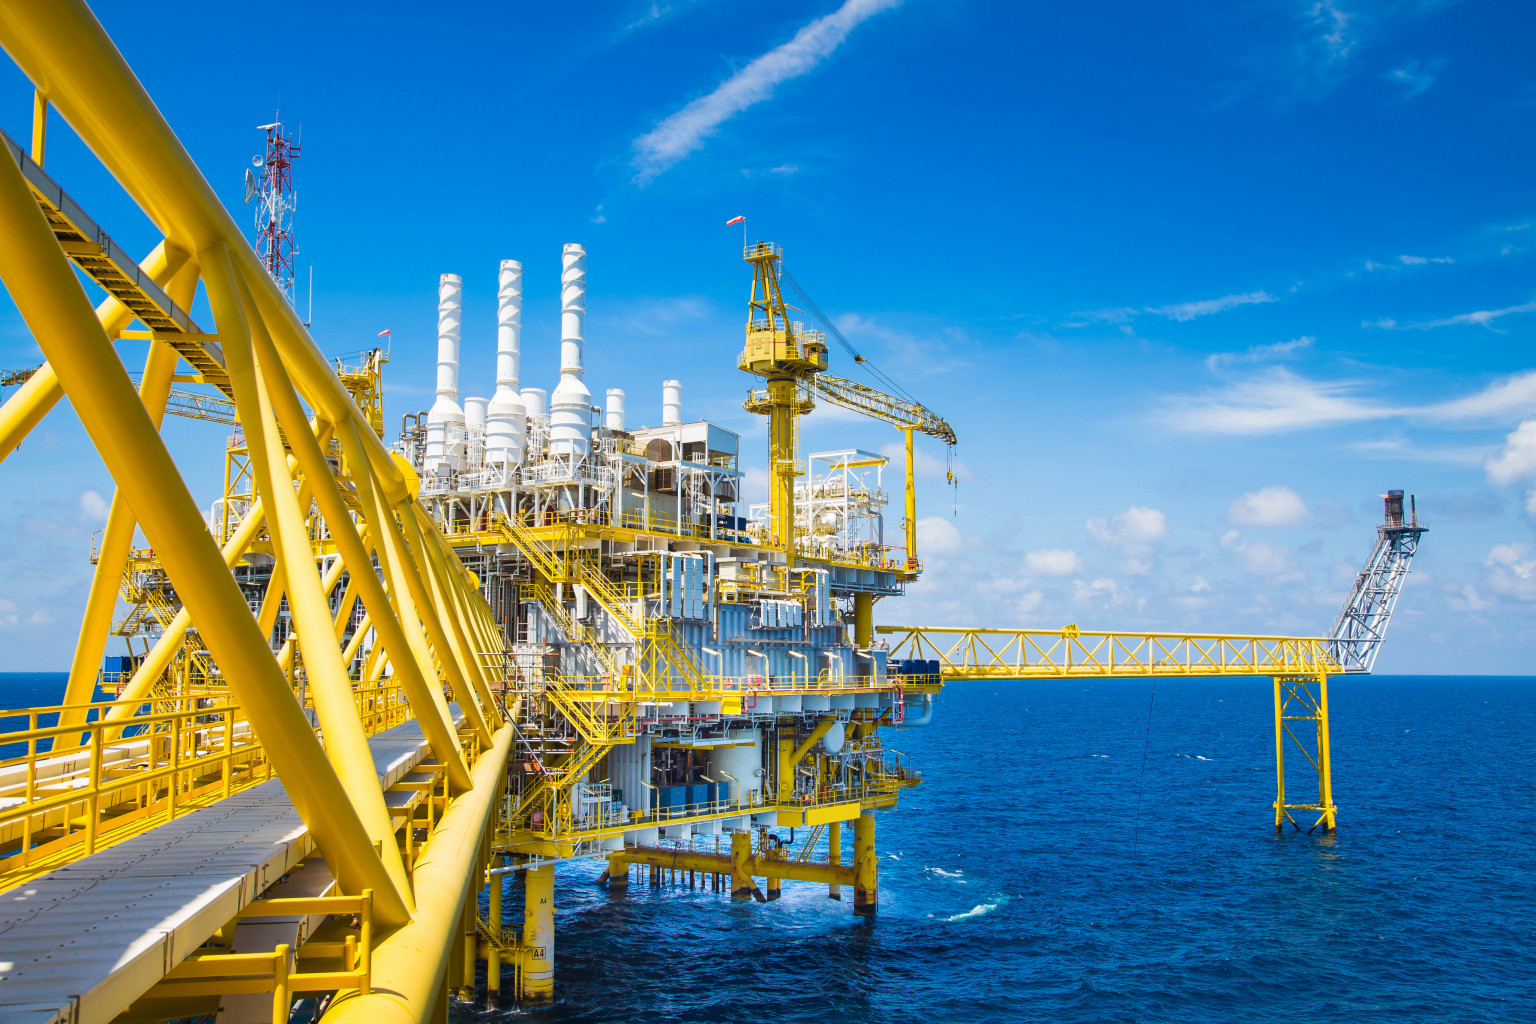 offshore gas extraction platform